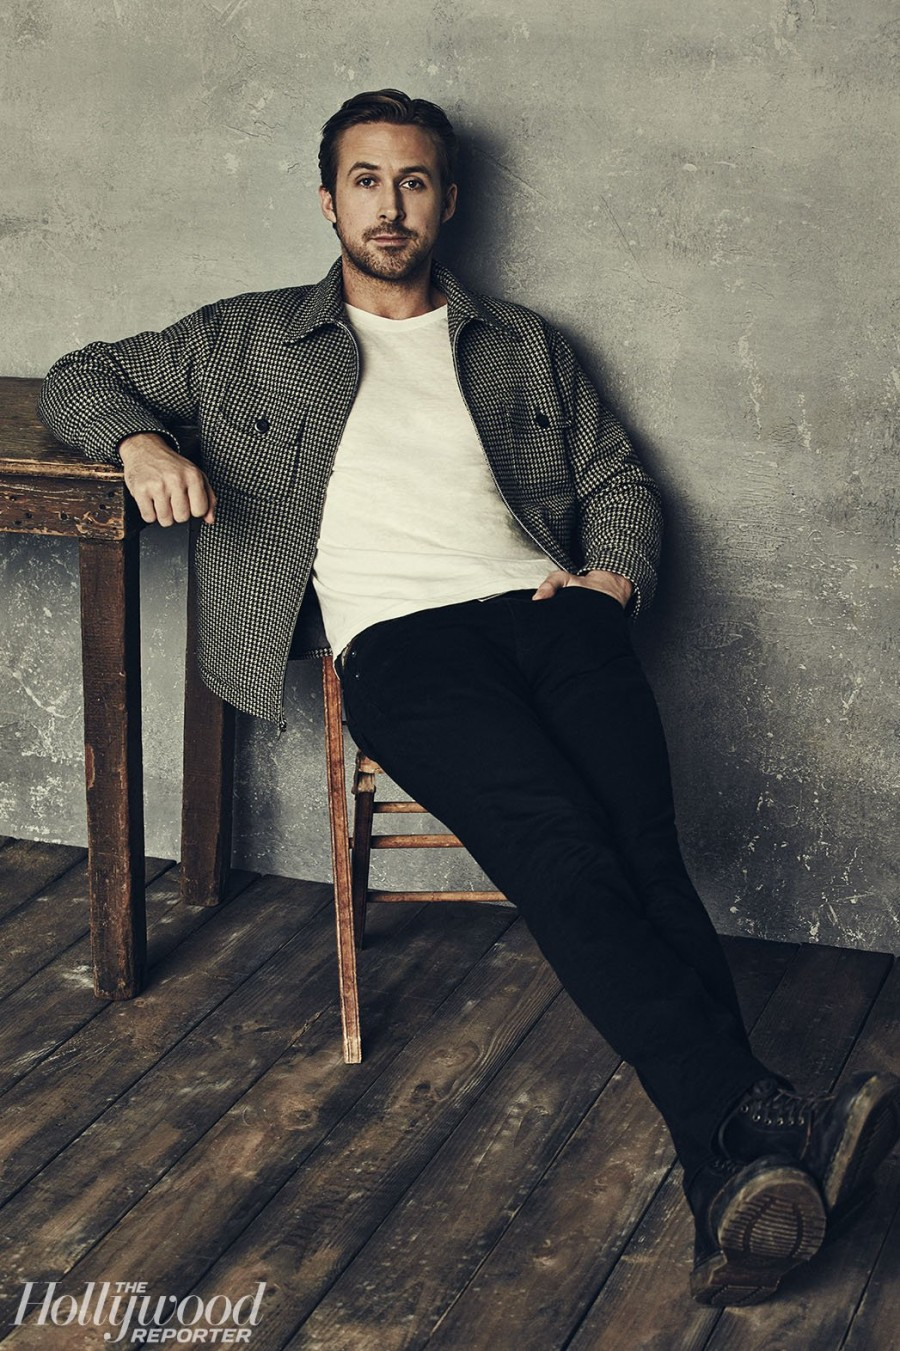 Ryan Gosling for The Hollywood Reporter